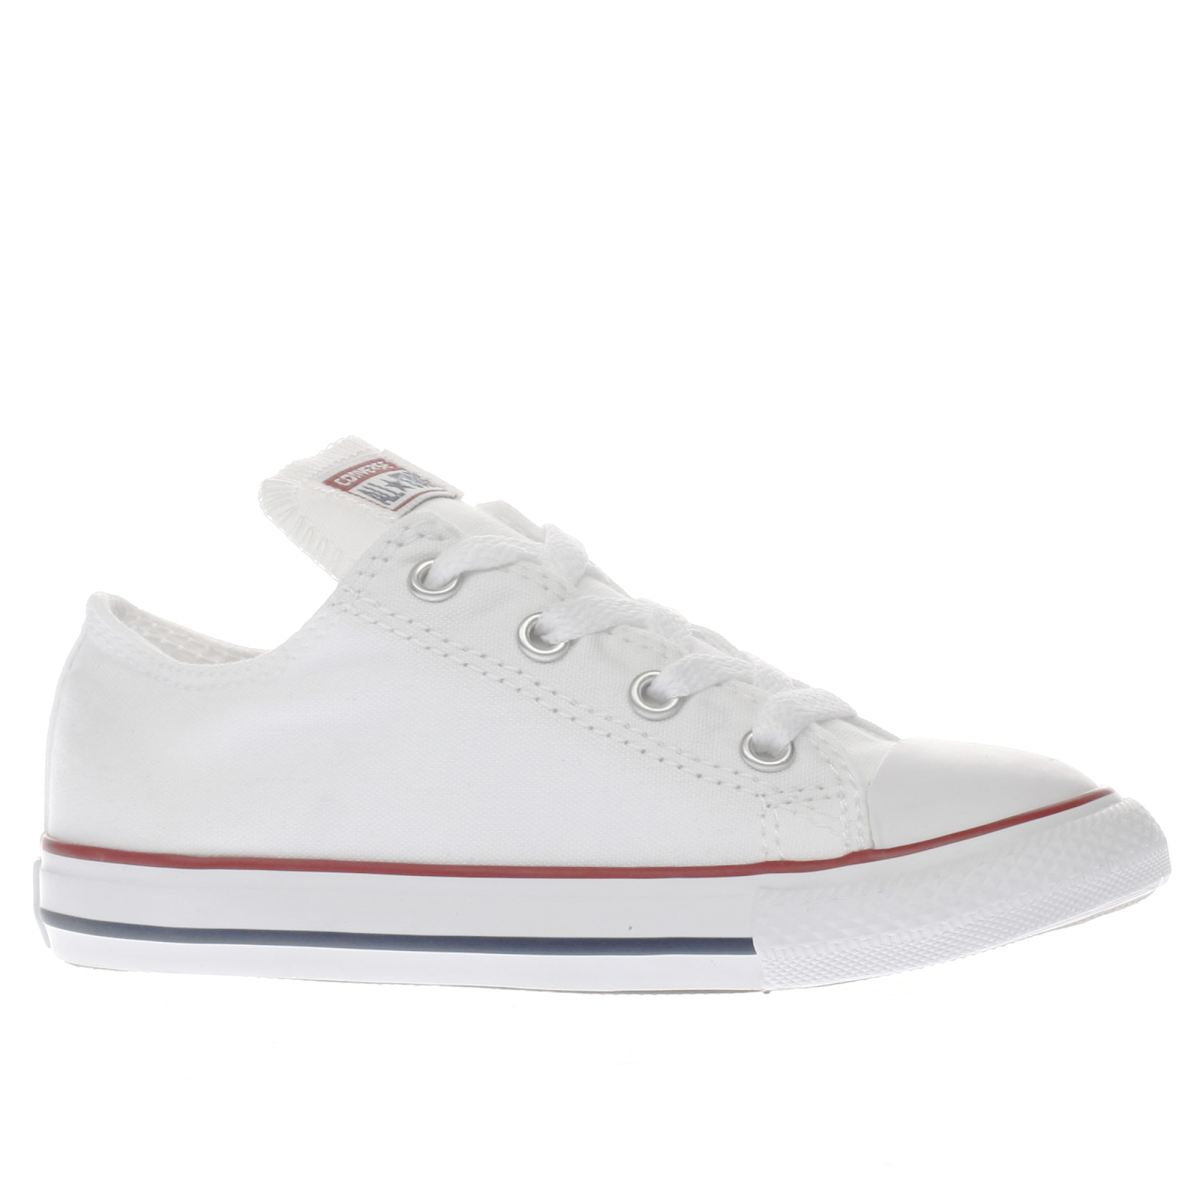 converse trainers converse white all star lo unisex toddler VOVFBYQ